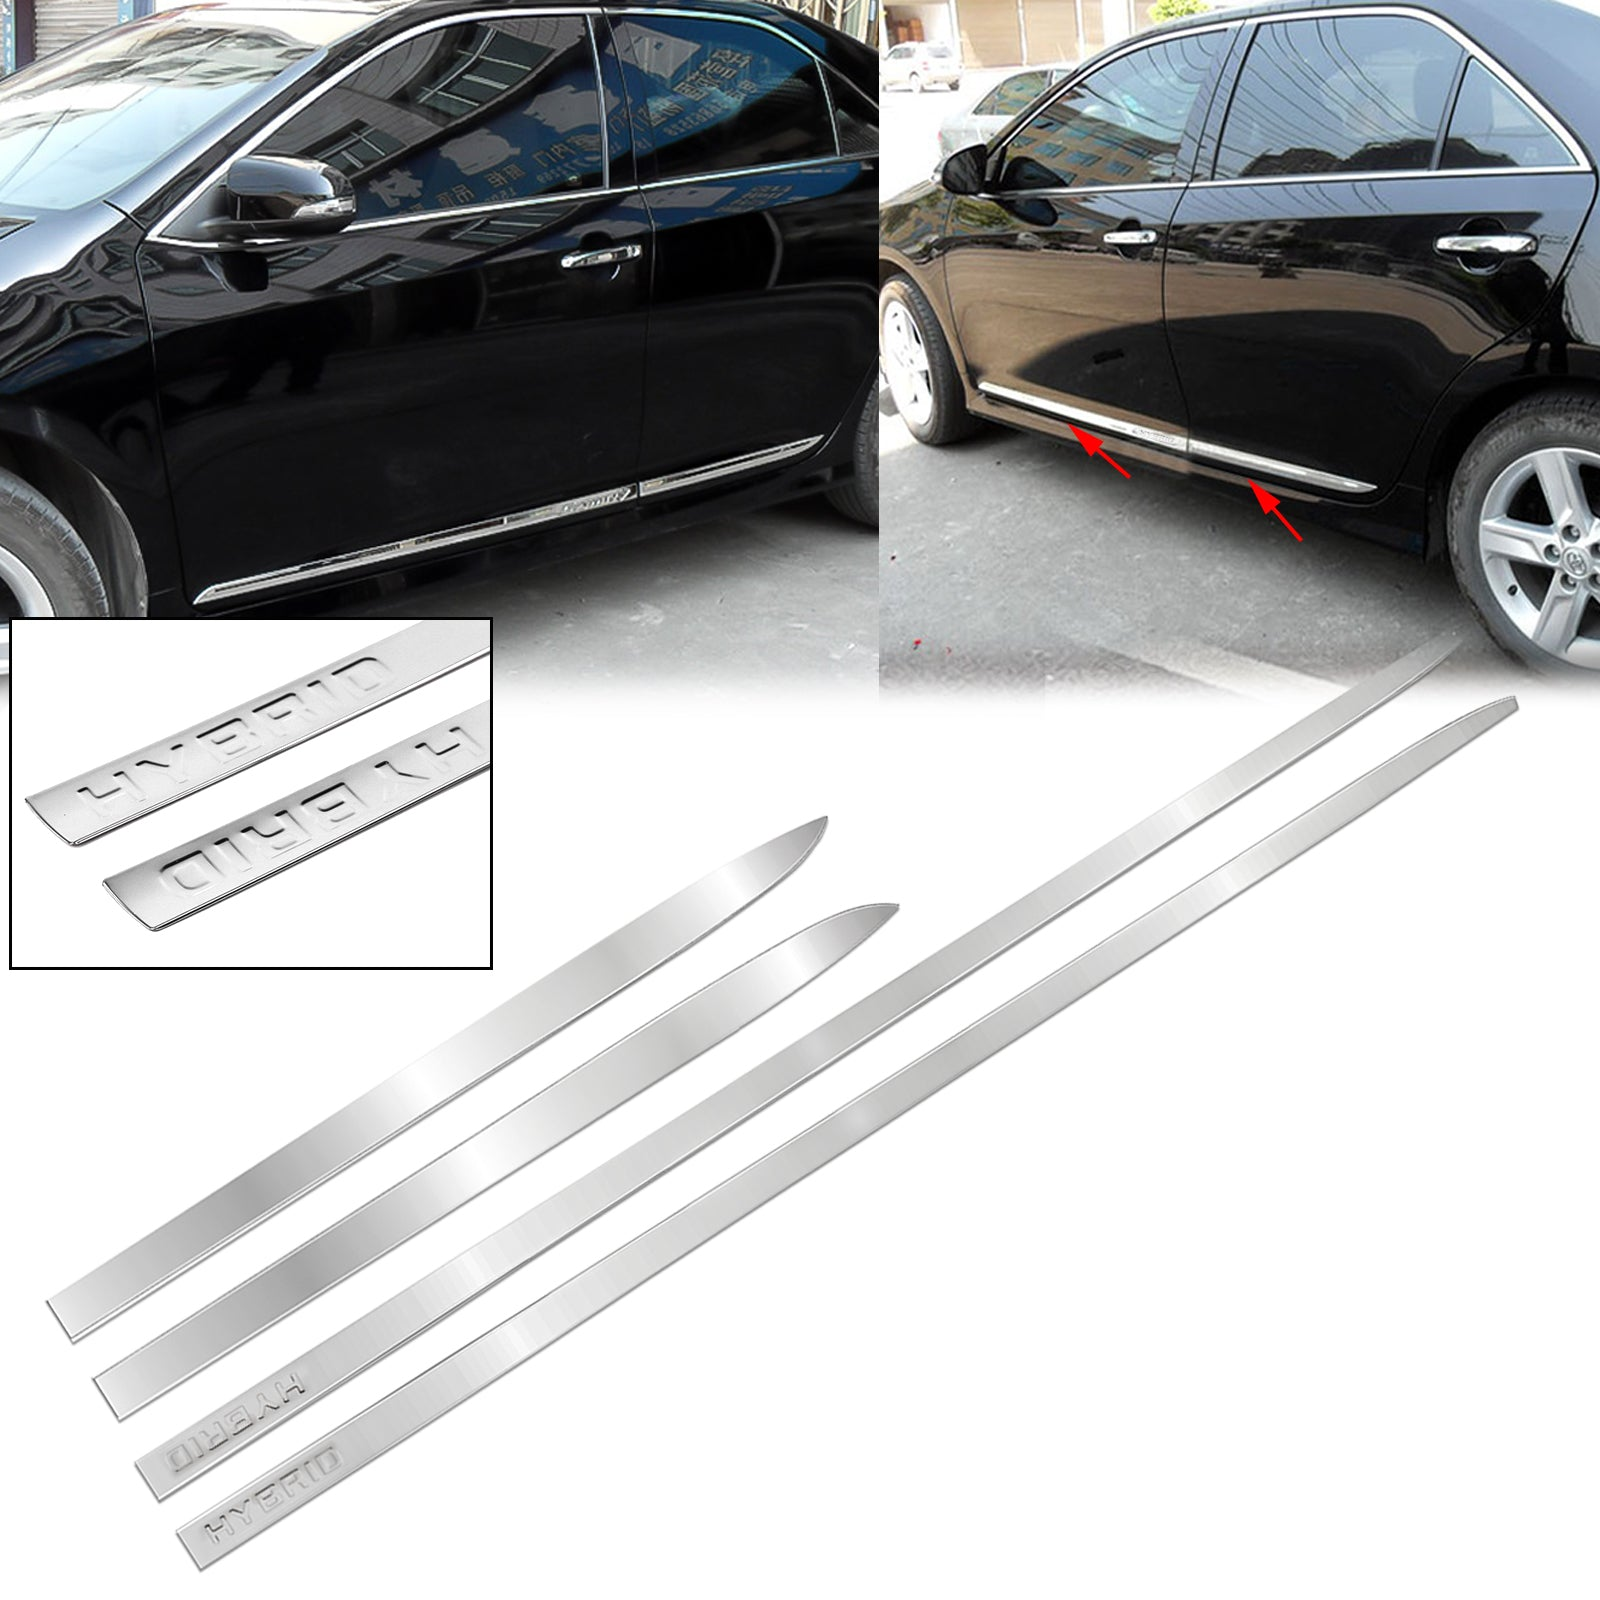 for RAM 1500 2012-2018 OMAC USA Stainless Steel Chrome Side Body Molding Protector Double Sliding Door Trim 4 Pcs